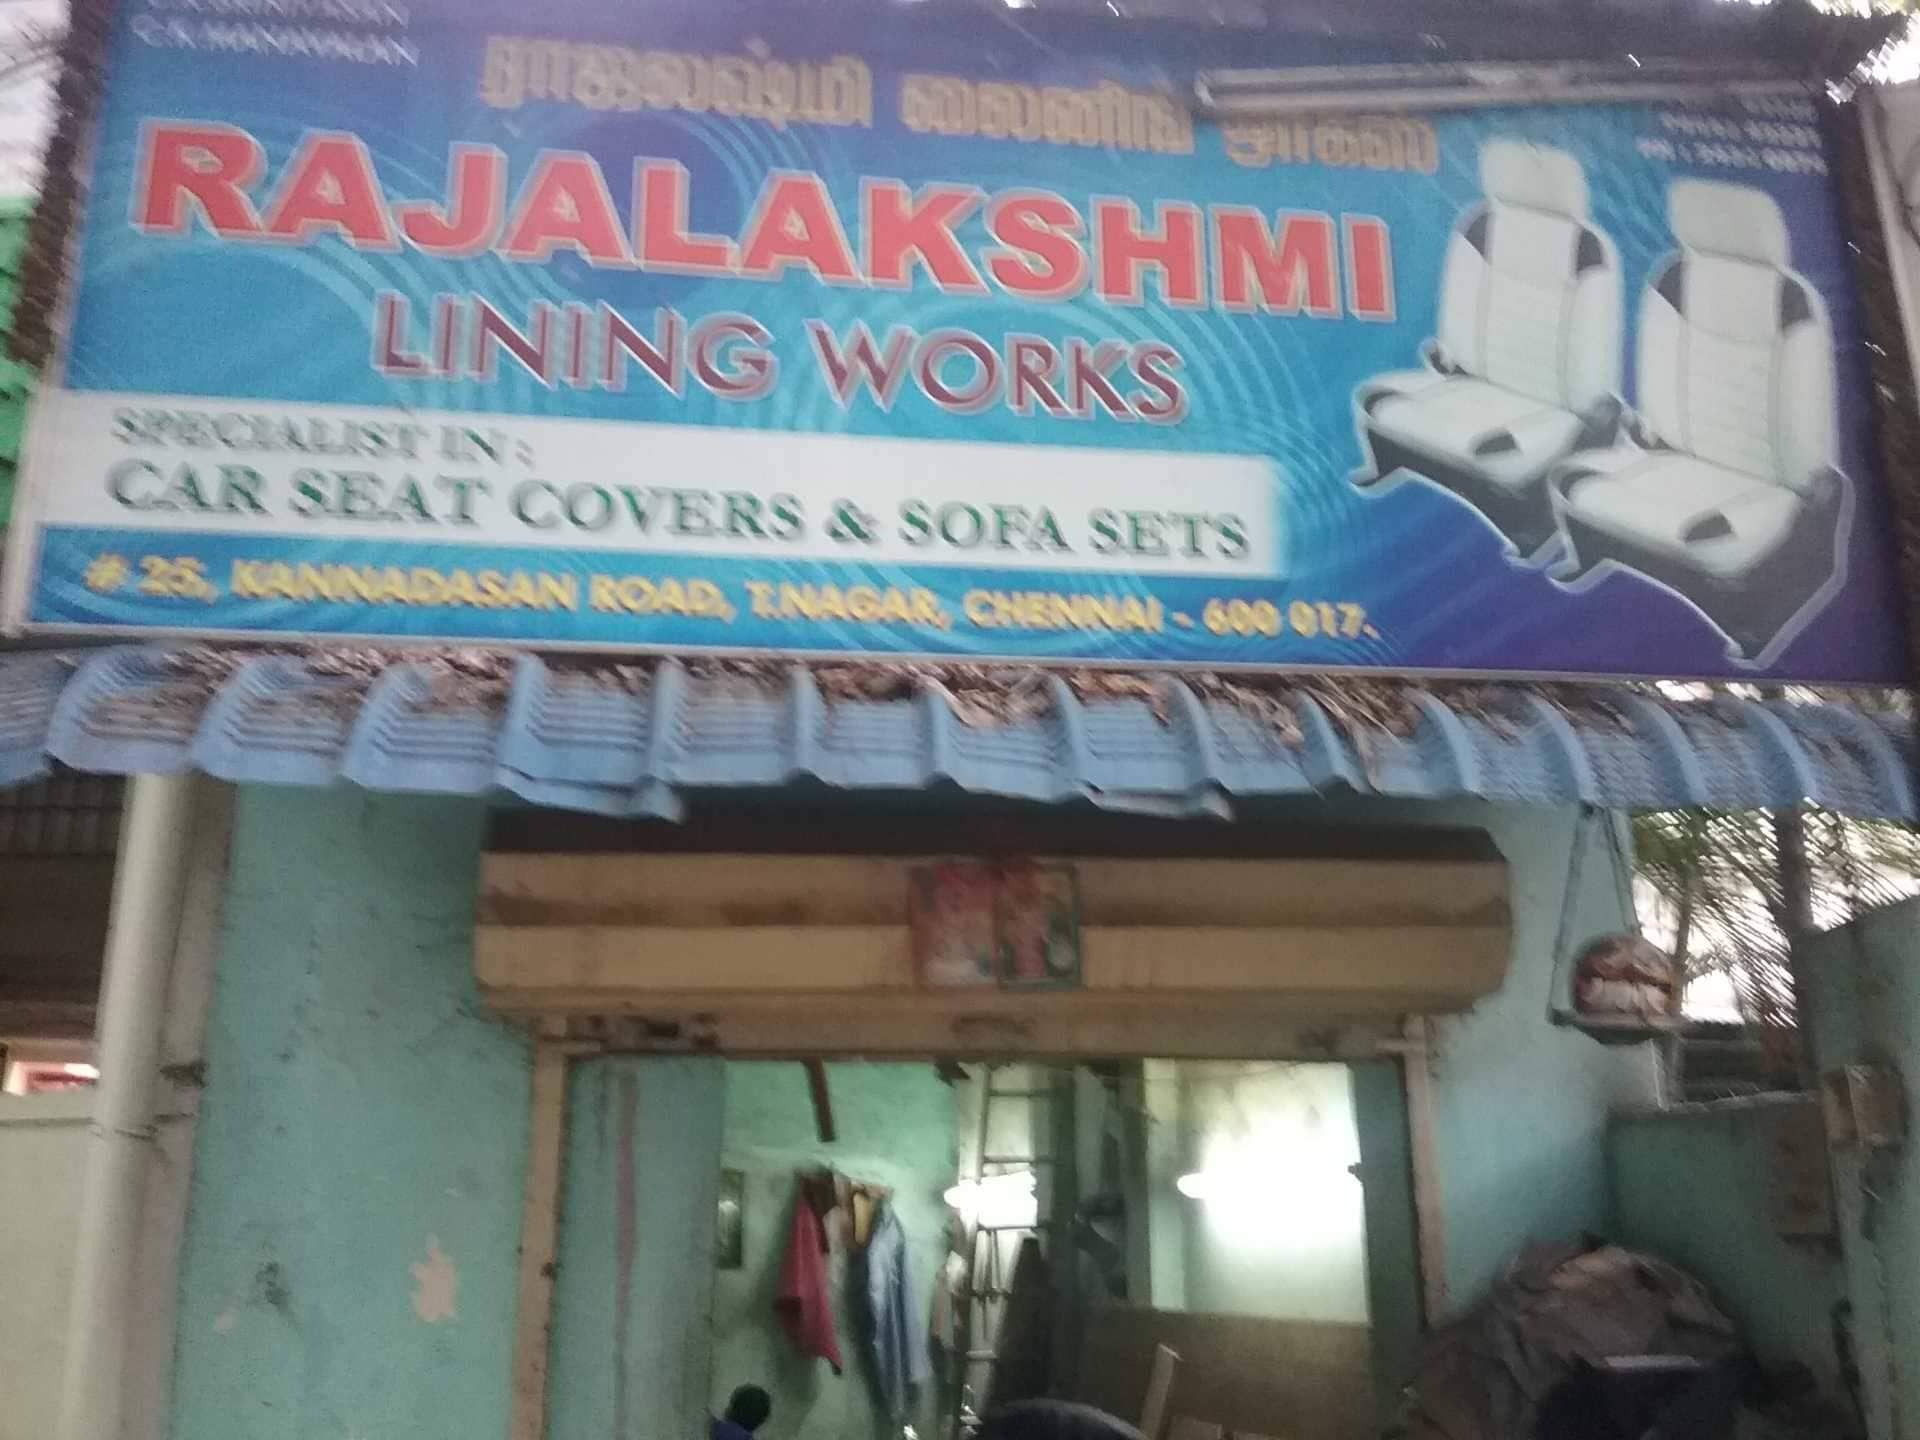 Stupendous Top Autokame Car Seat Cover Manufacturers In Ekkaduthangal Alphanode Cool Chair Designs And Ideas Alphanodeonline